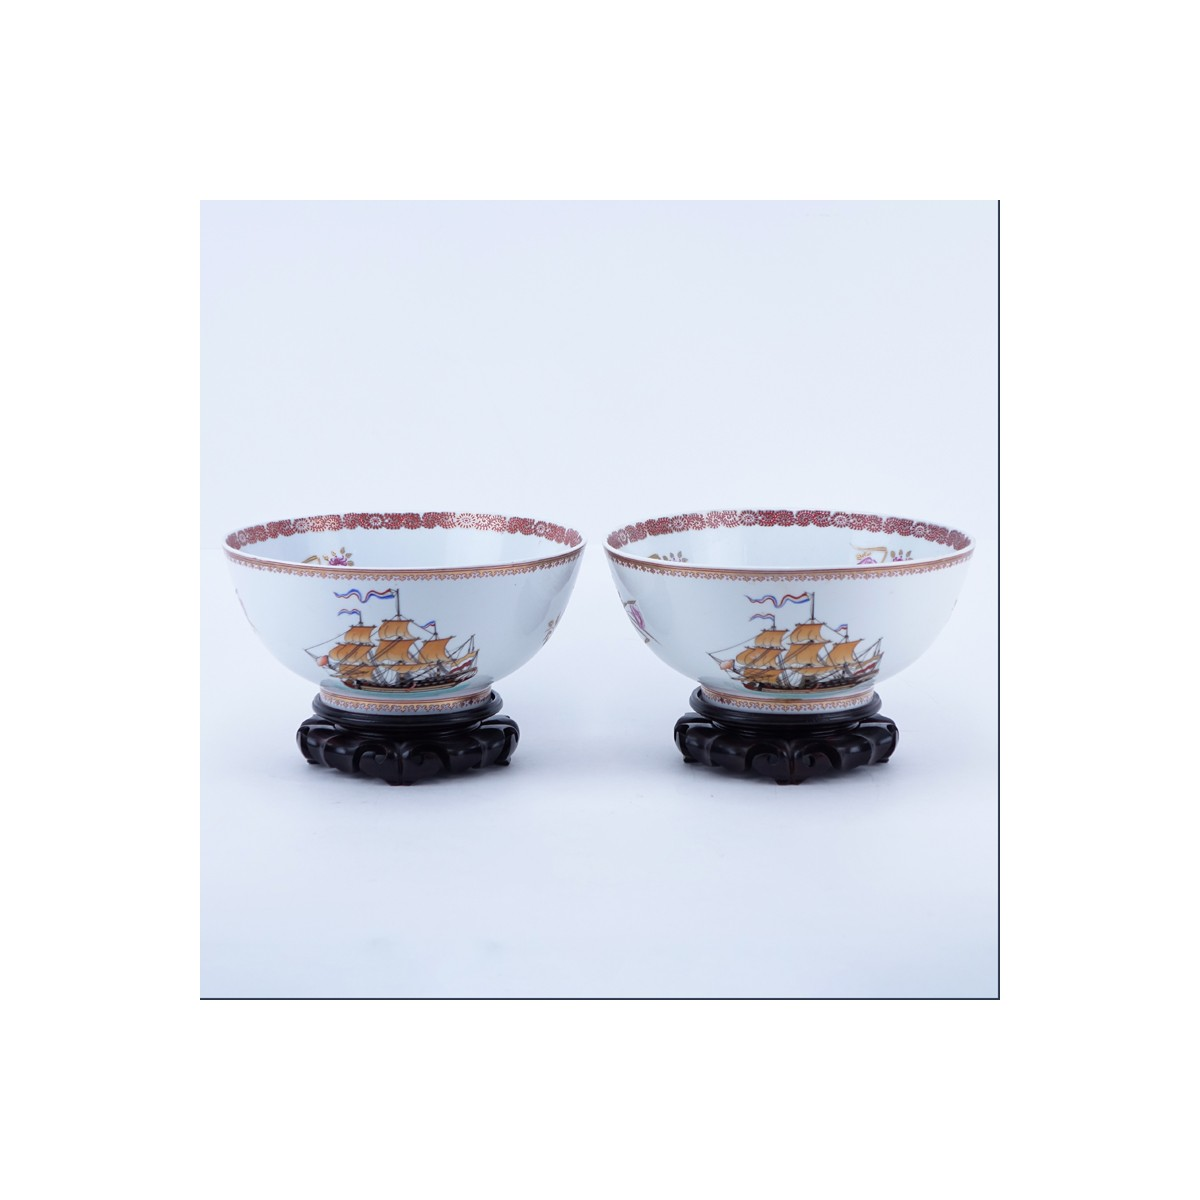 Pair 19/20th Century Chinese Export Hand Painted Porcelain Bowls On Stands. Depicting Western saili